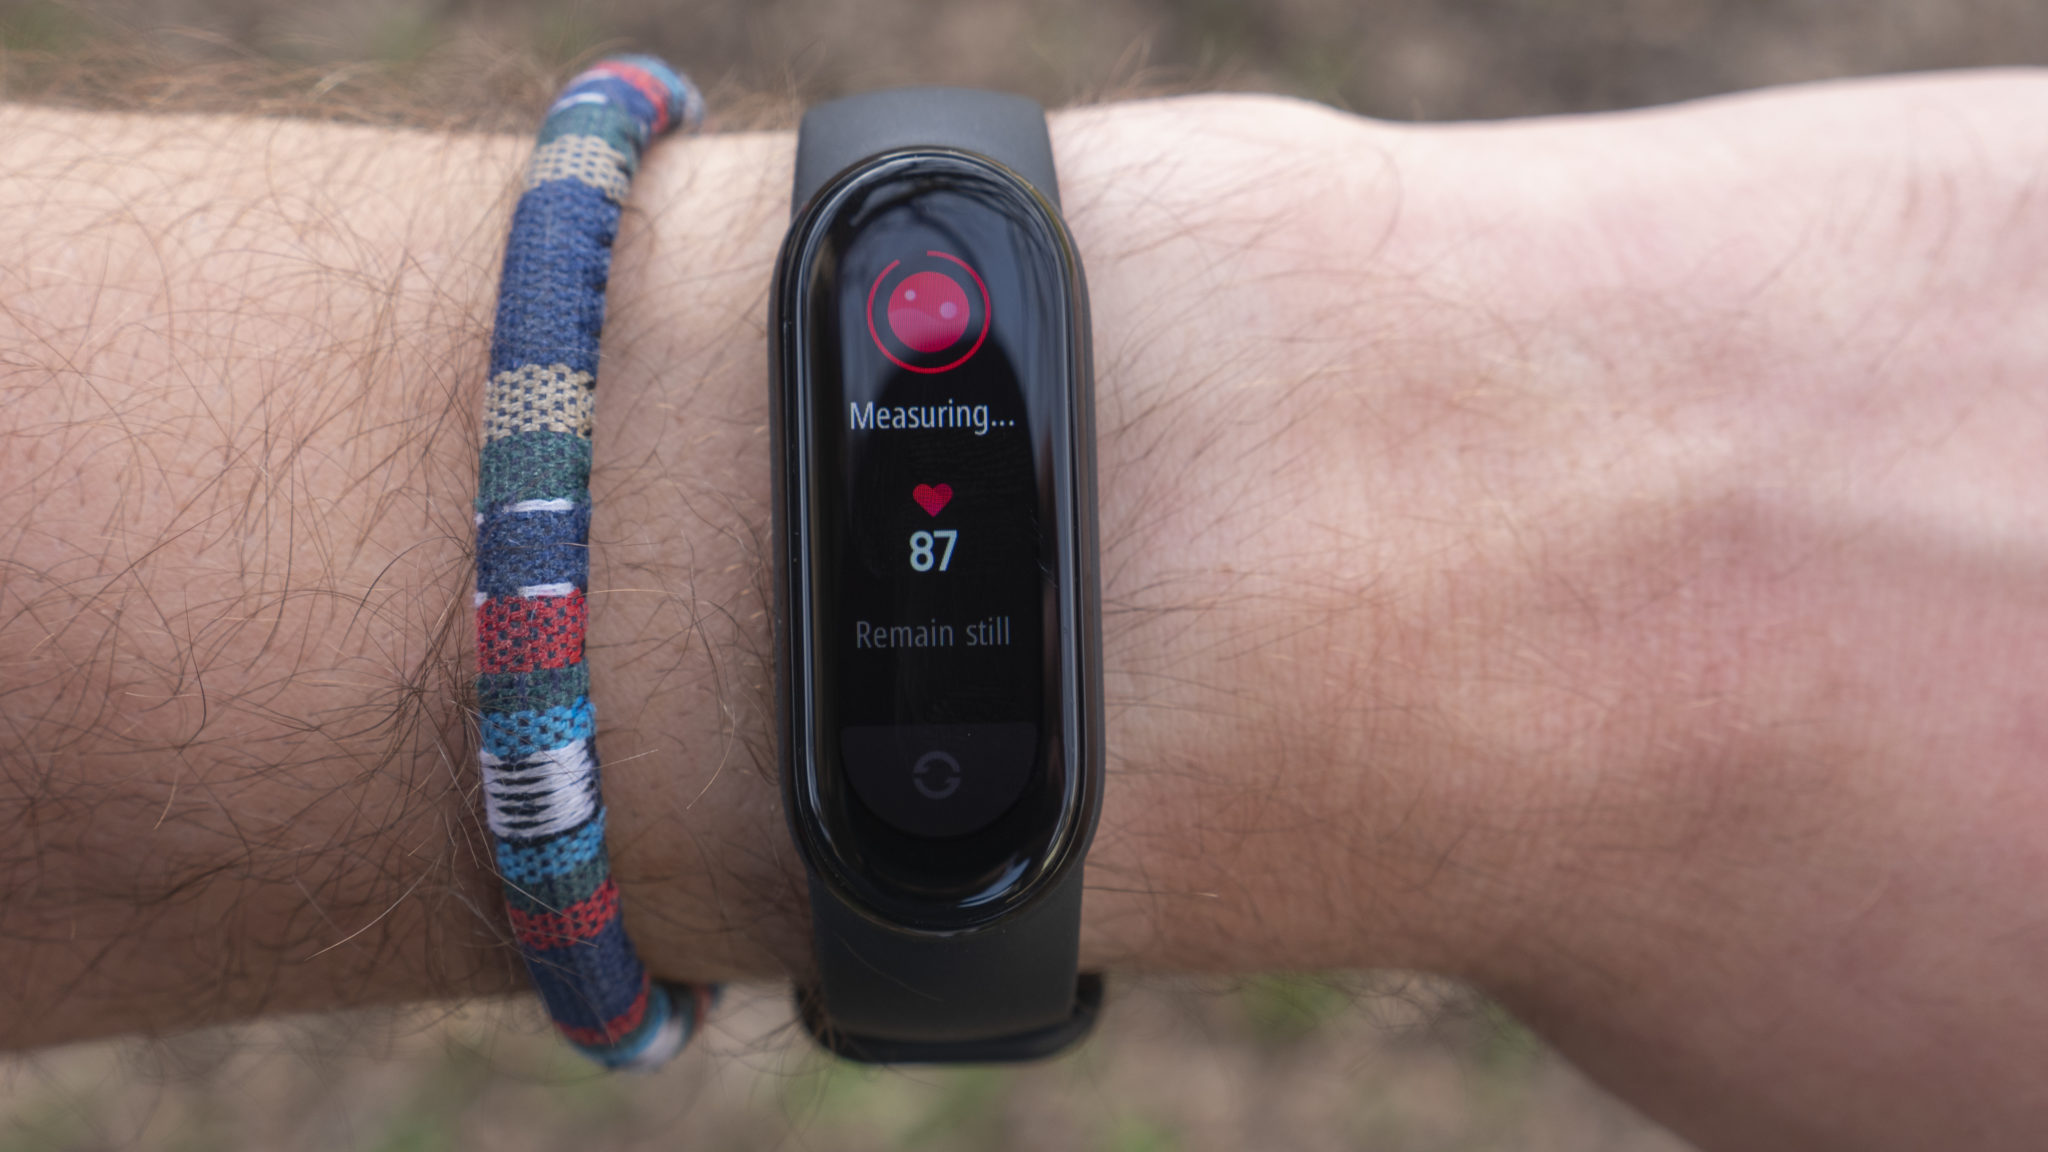 The newly launched Mi Smart Band 6 has created a 'fever' in the market